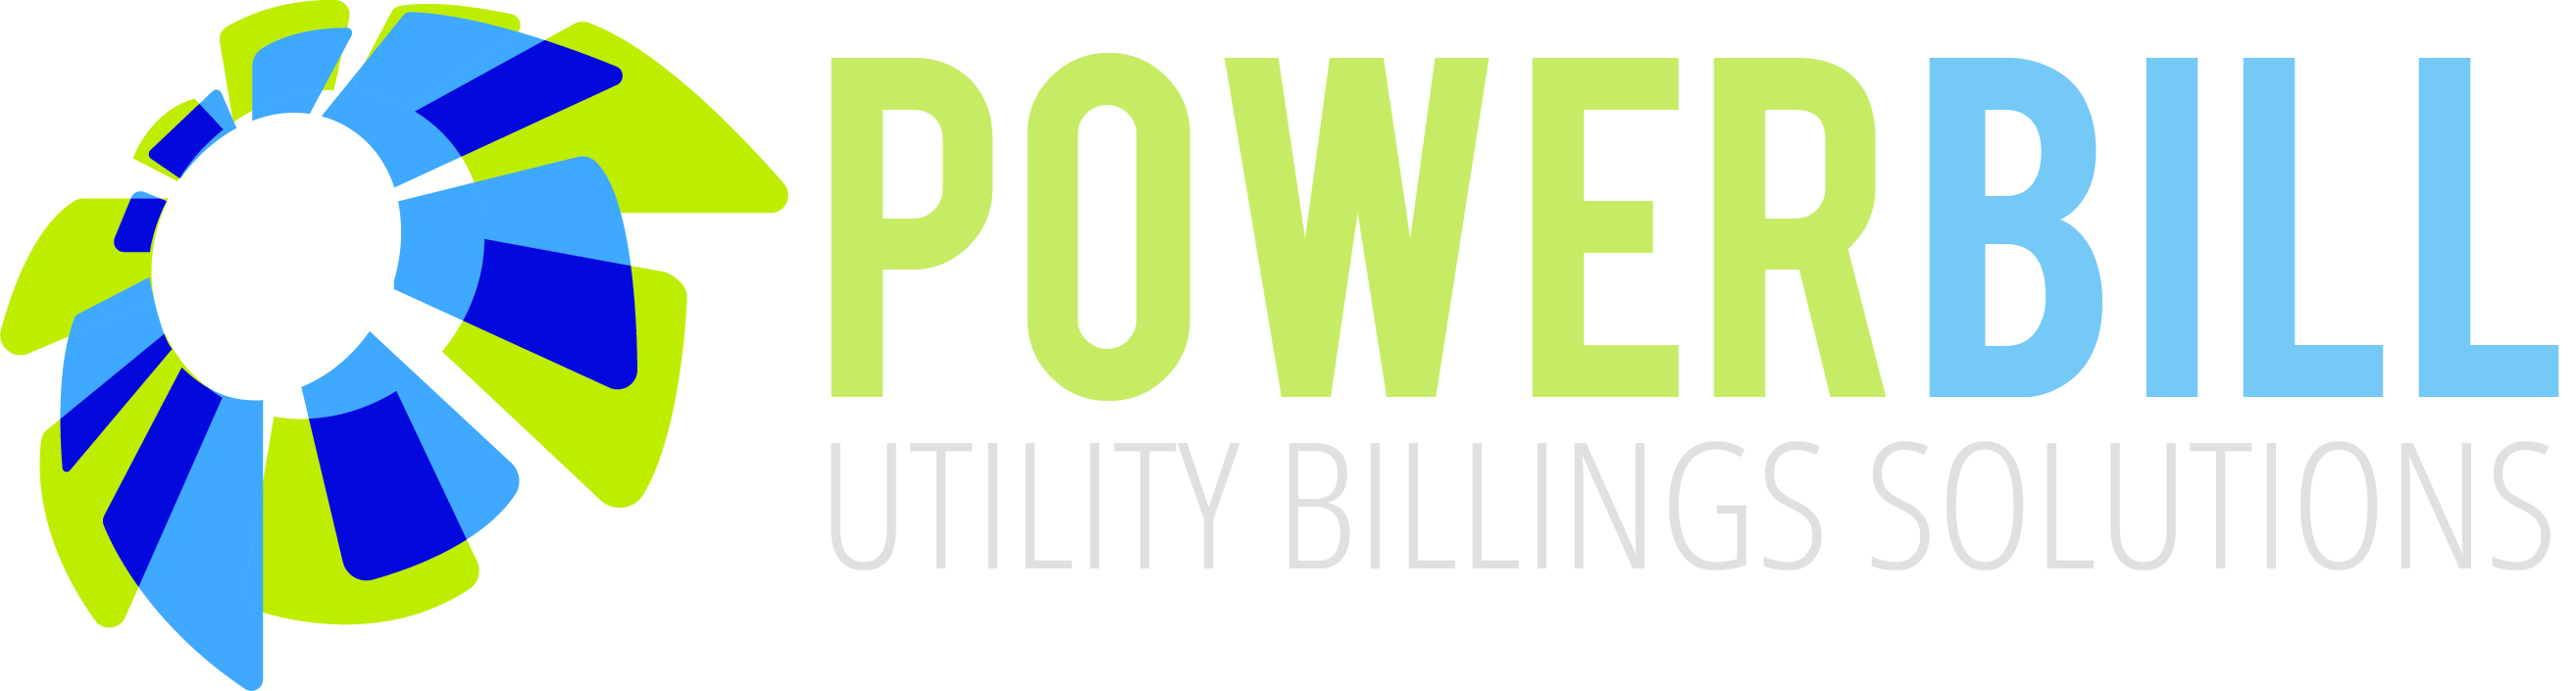 Power Bill